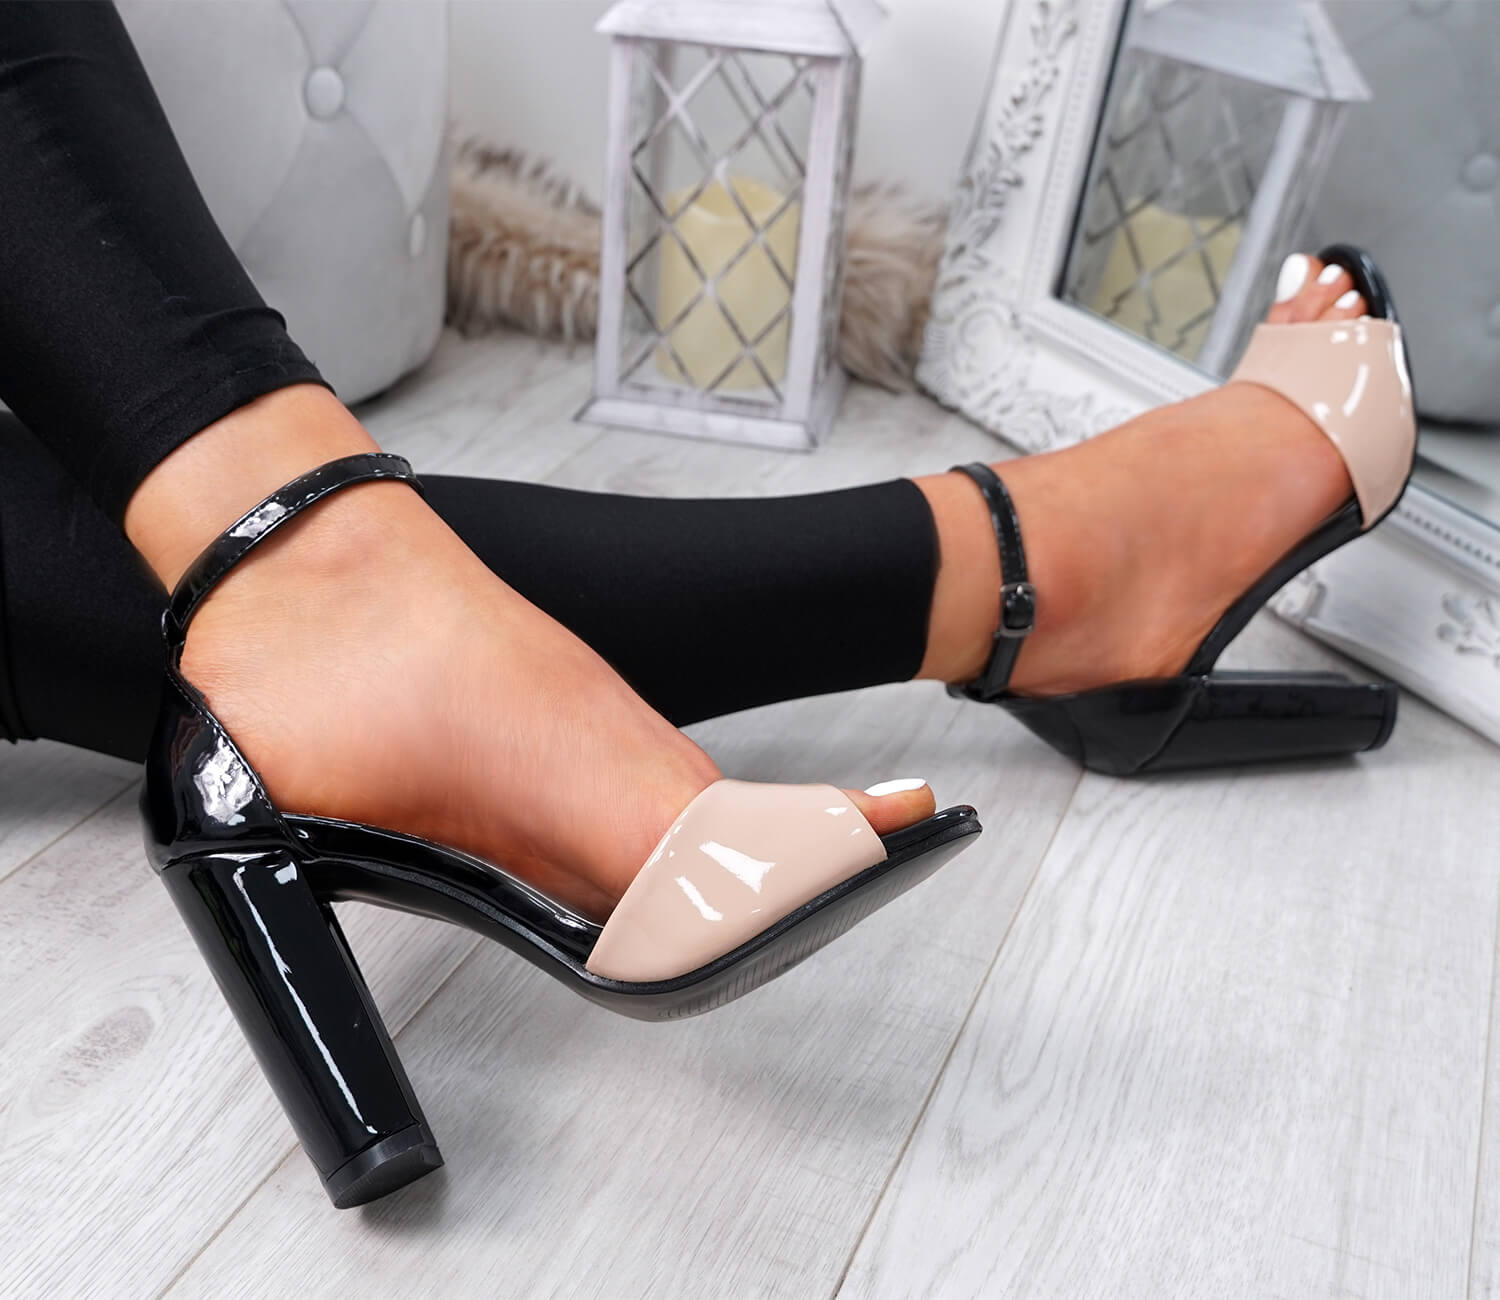 WOMENS-LADIES-ANKLE-STRAP-HIGH-BLOCK-HEEL-SANDALS-PEEP-TOE-OFFICE-CASUAL-SHOES thumbnail 9